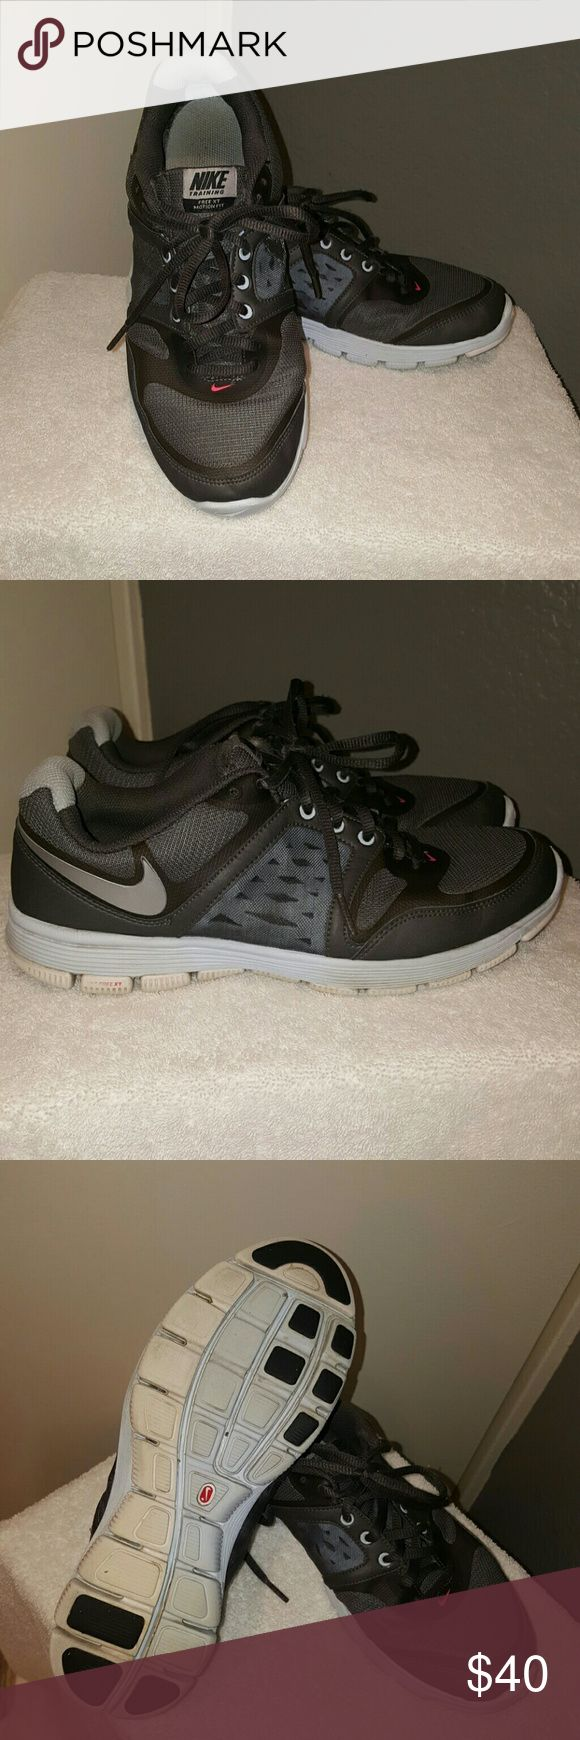 Pre- Loved Women's Nike Free XT- Size 8.5 These are a pair of DARK GRAY colored women's Nike with a silver colored swoosh on outside heel of each shoe. These are 9/10 condition. Fit is true to size, I find this style runs a bit wide. Nike Shoes Sneakers